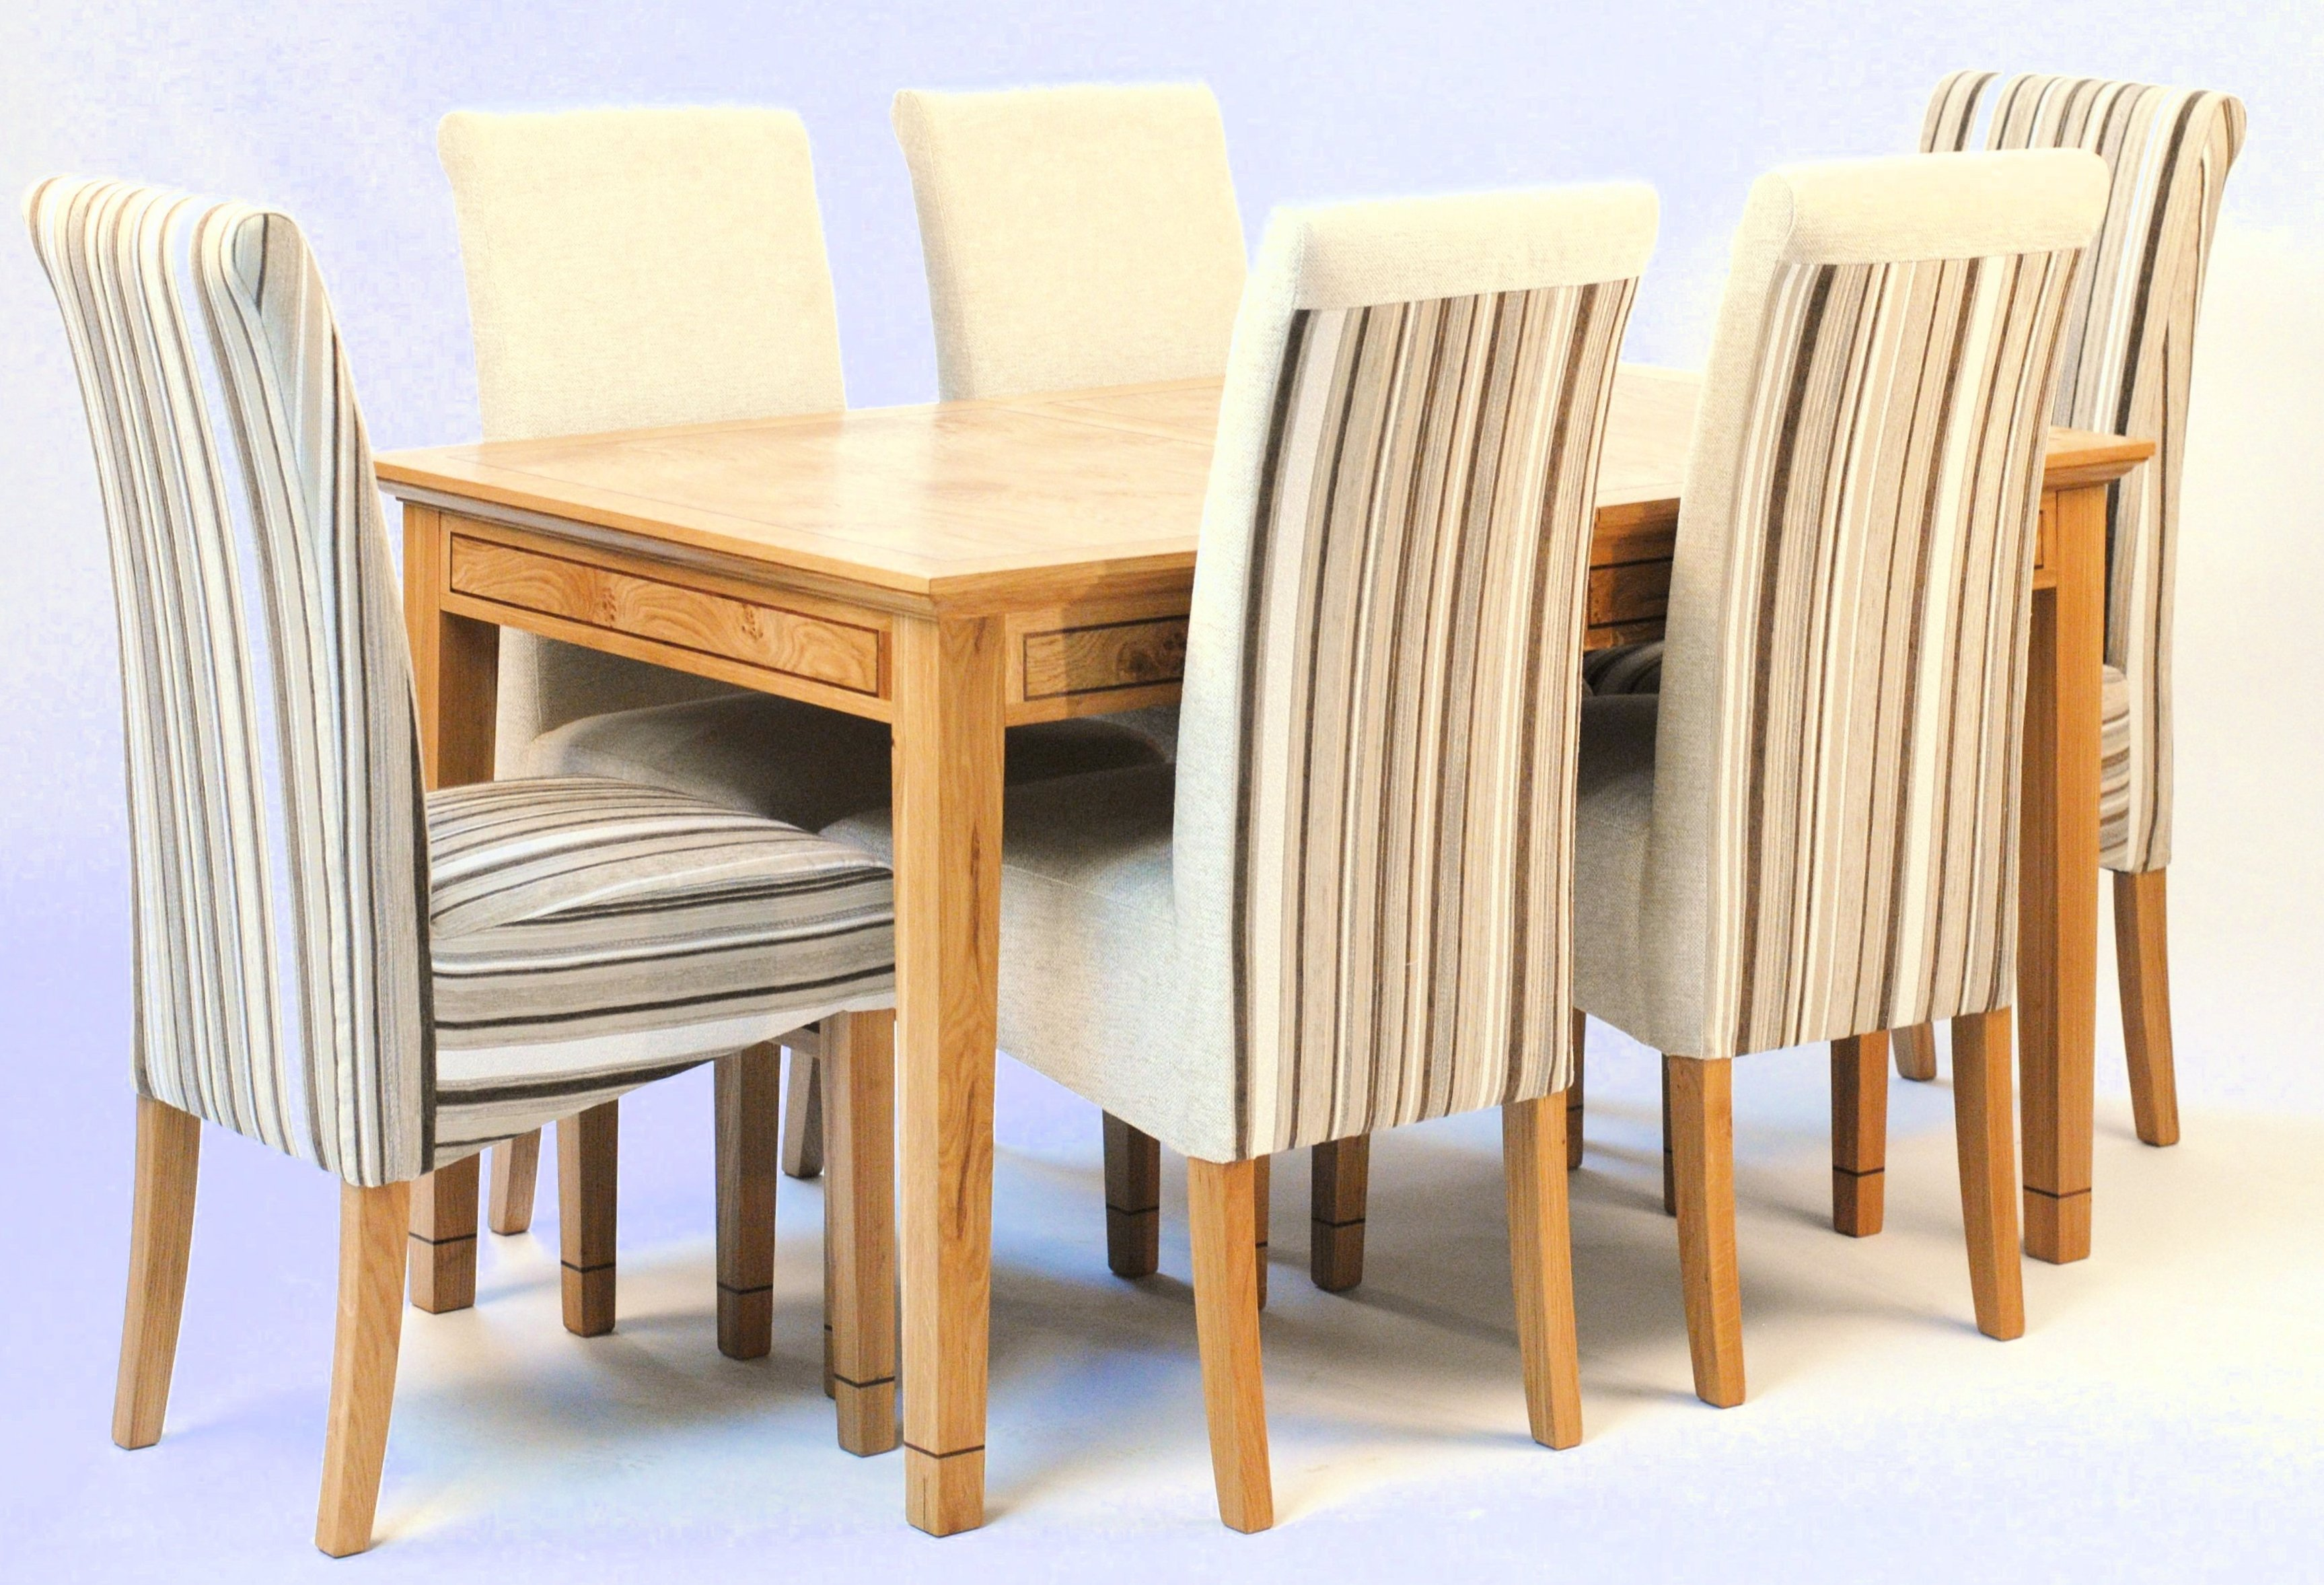 BOW516 Extending Dining Table ...